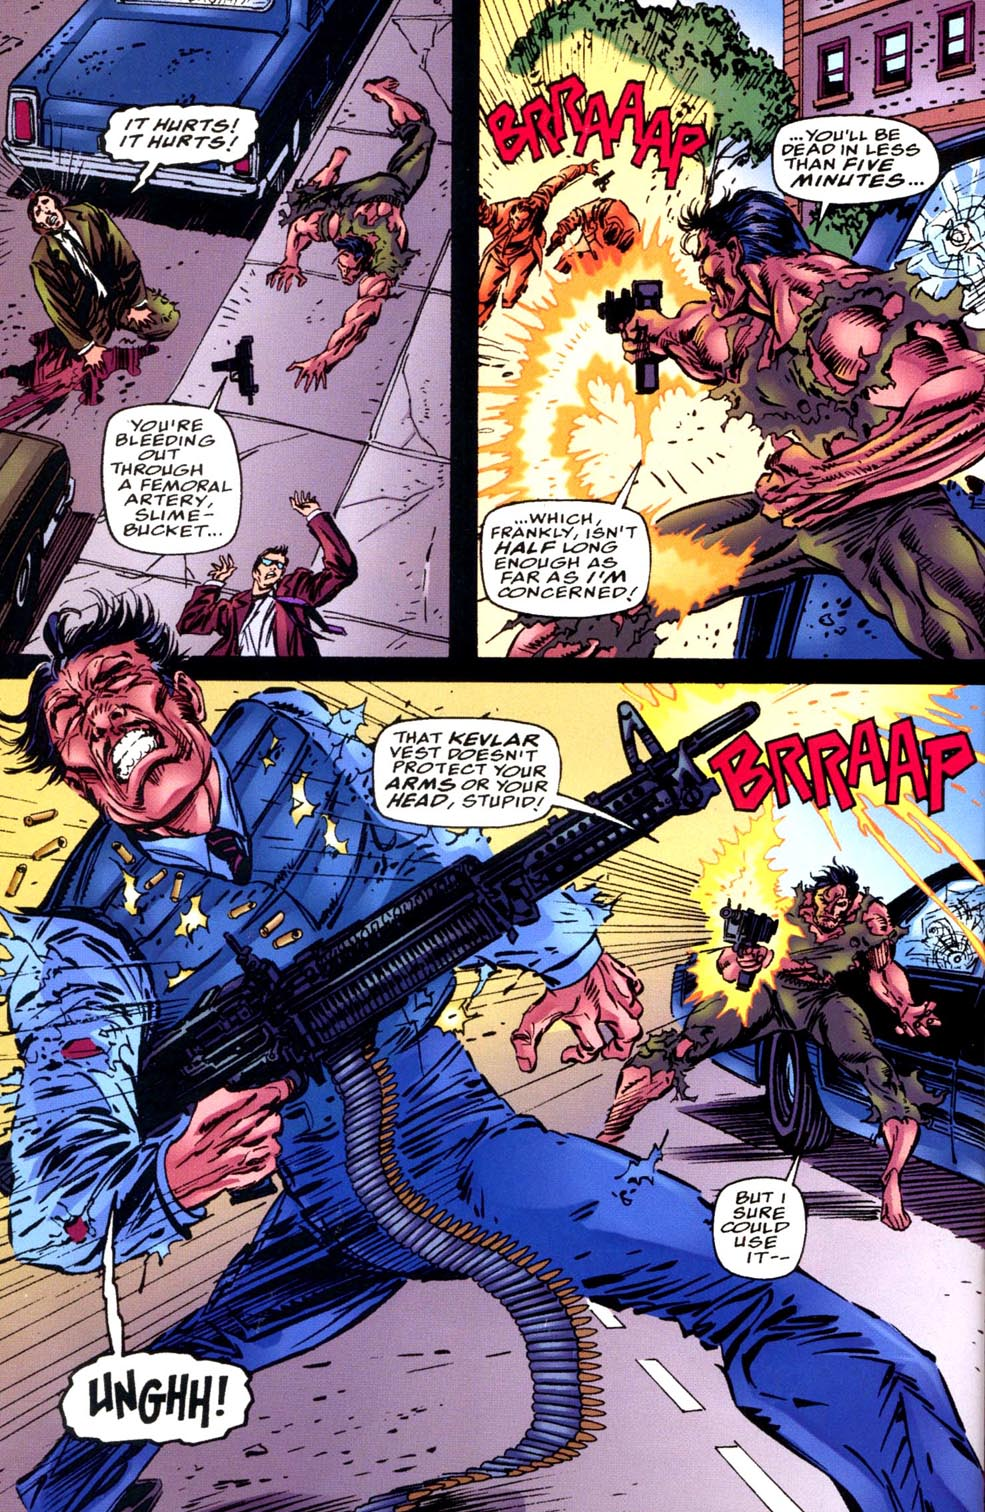 Read online Double Edge comic -  Issue # Issue Alpha - 34